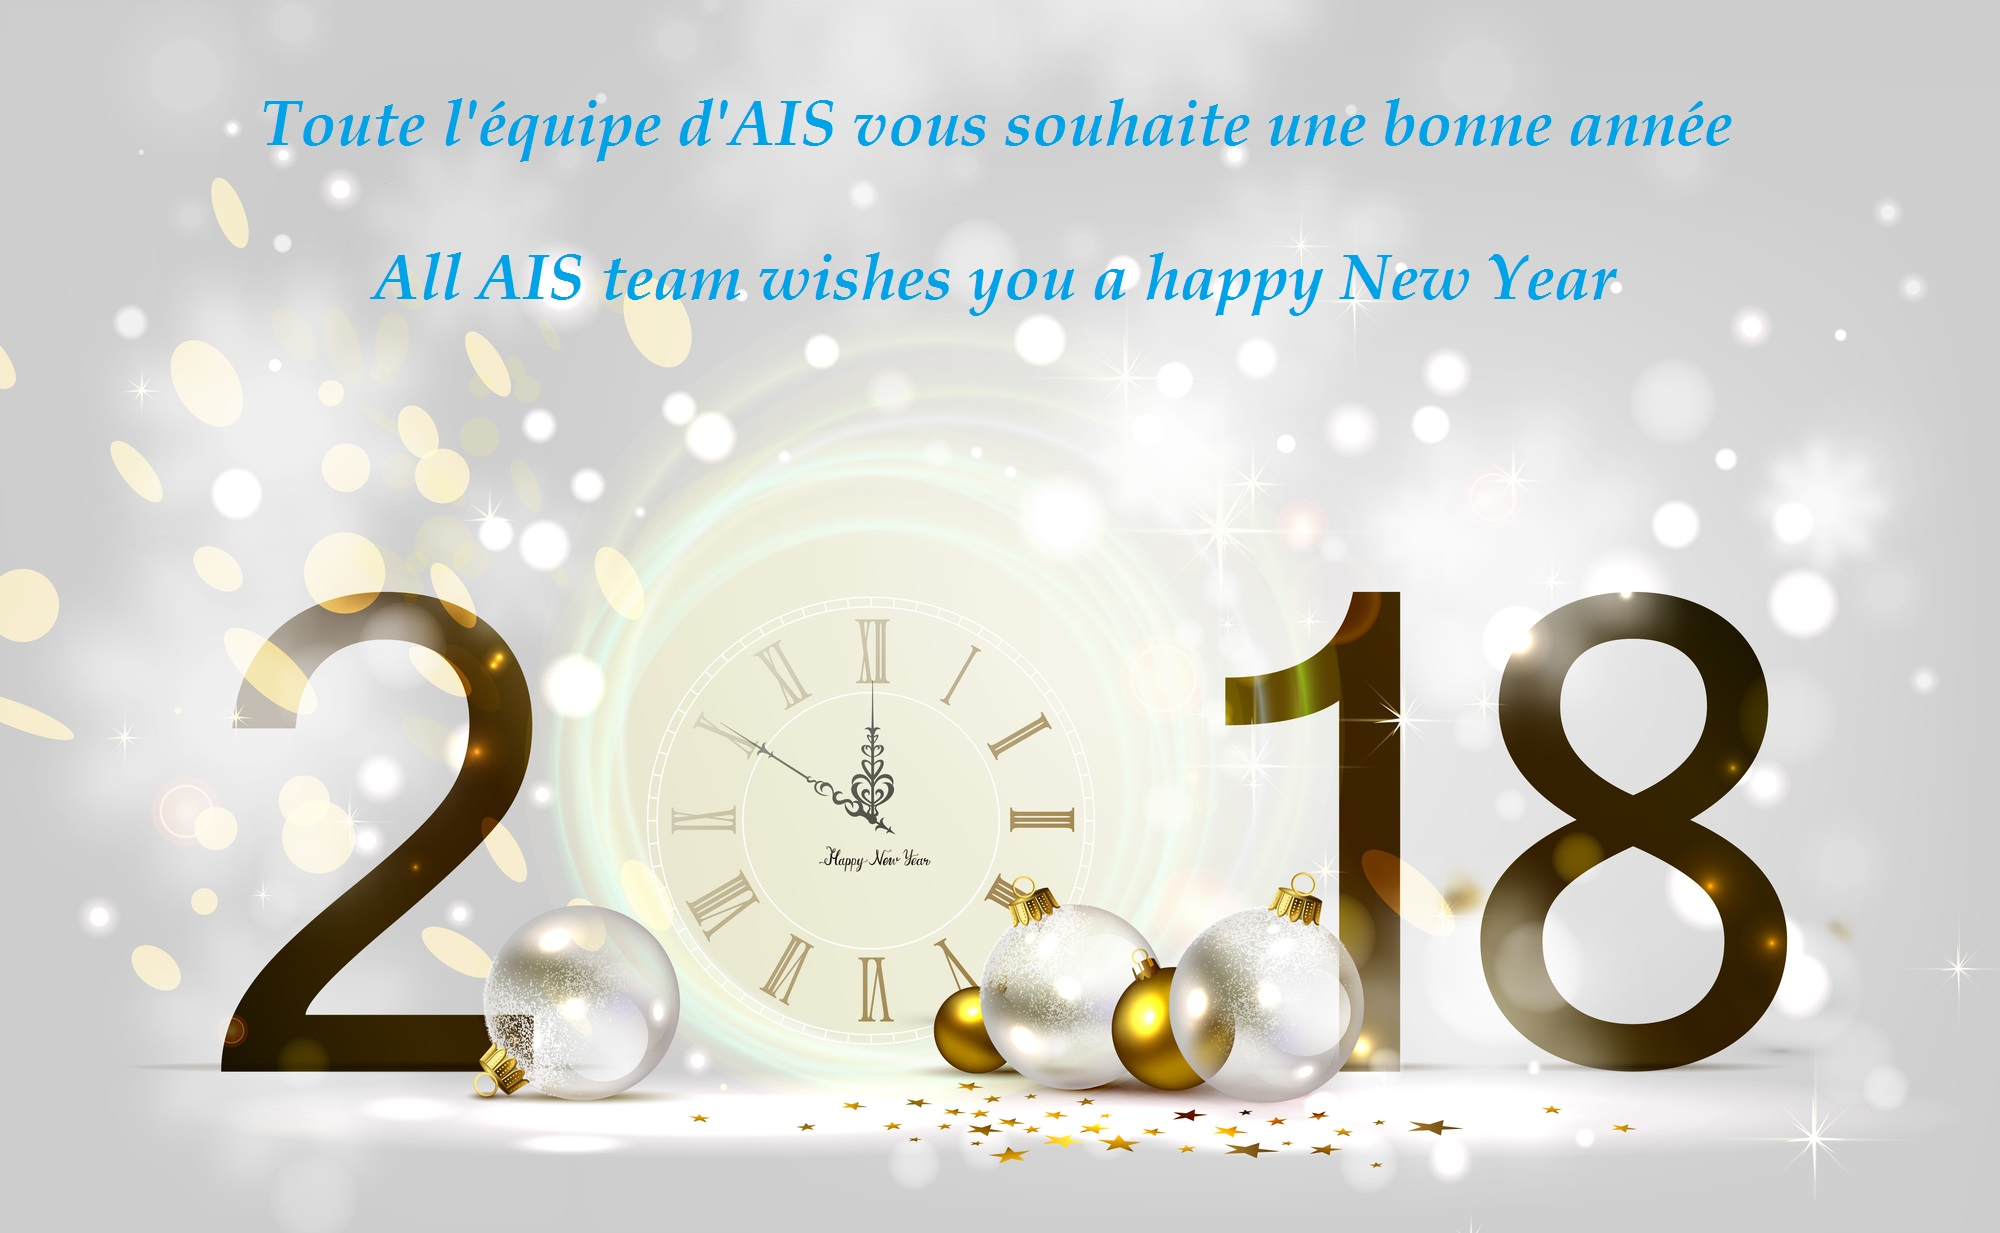 AIS wishes a happy New Year 2018 to all customers & partners